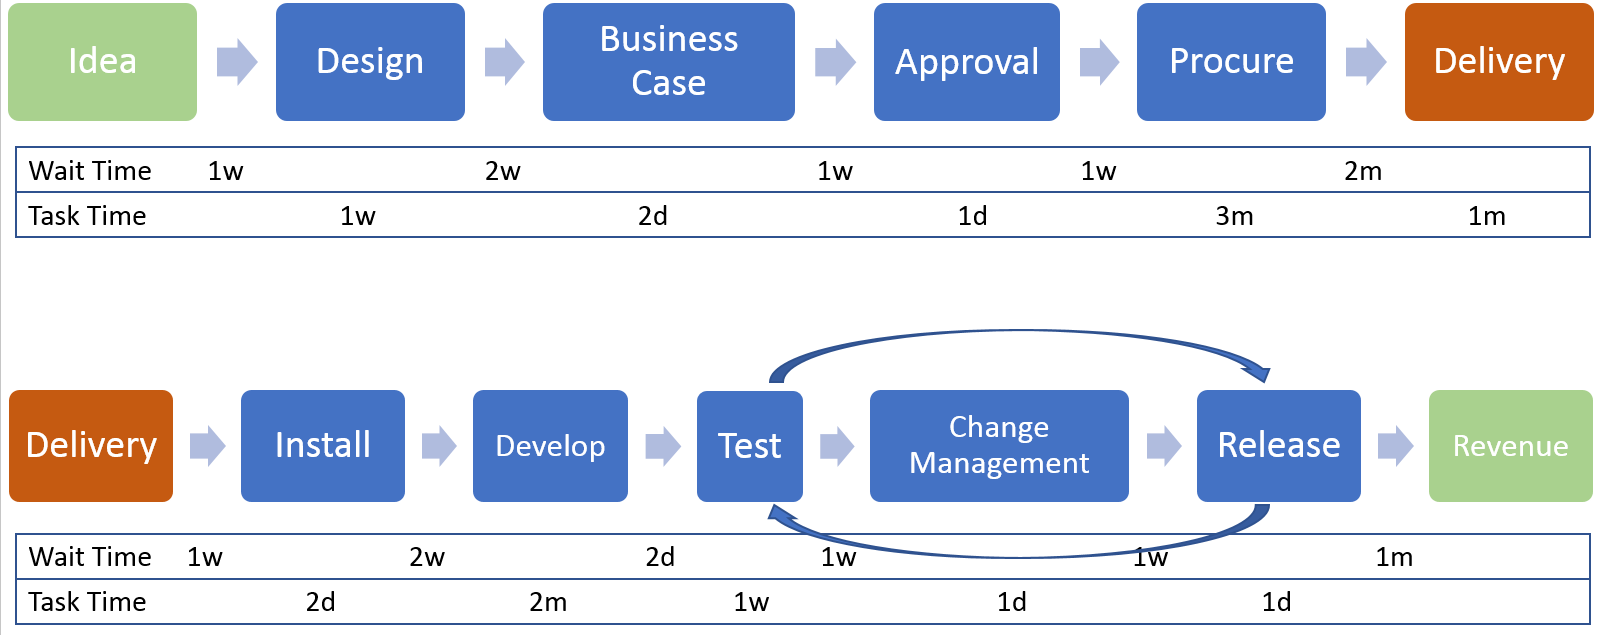 A typical software development value stream map